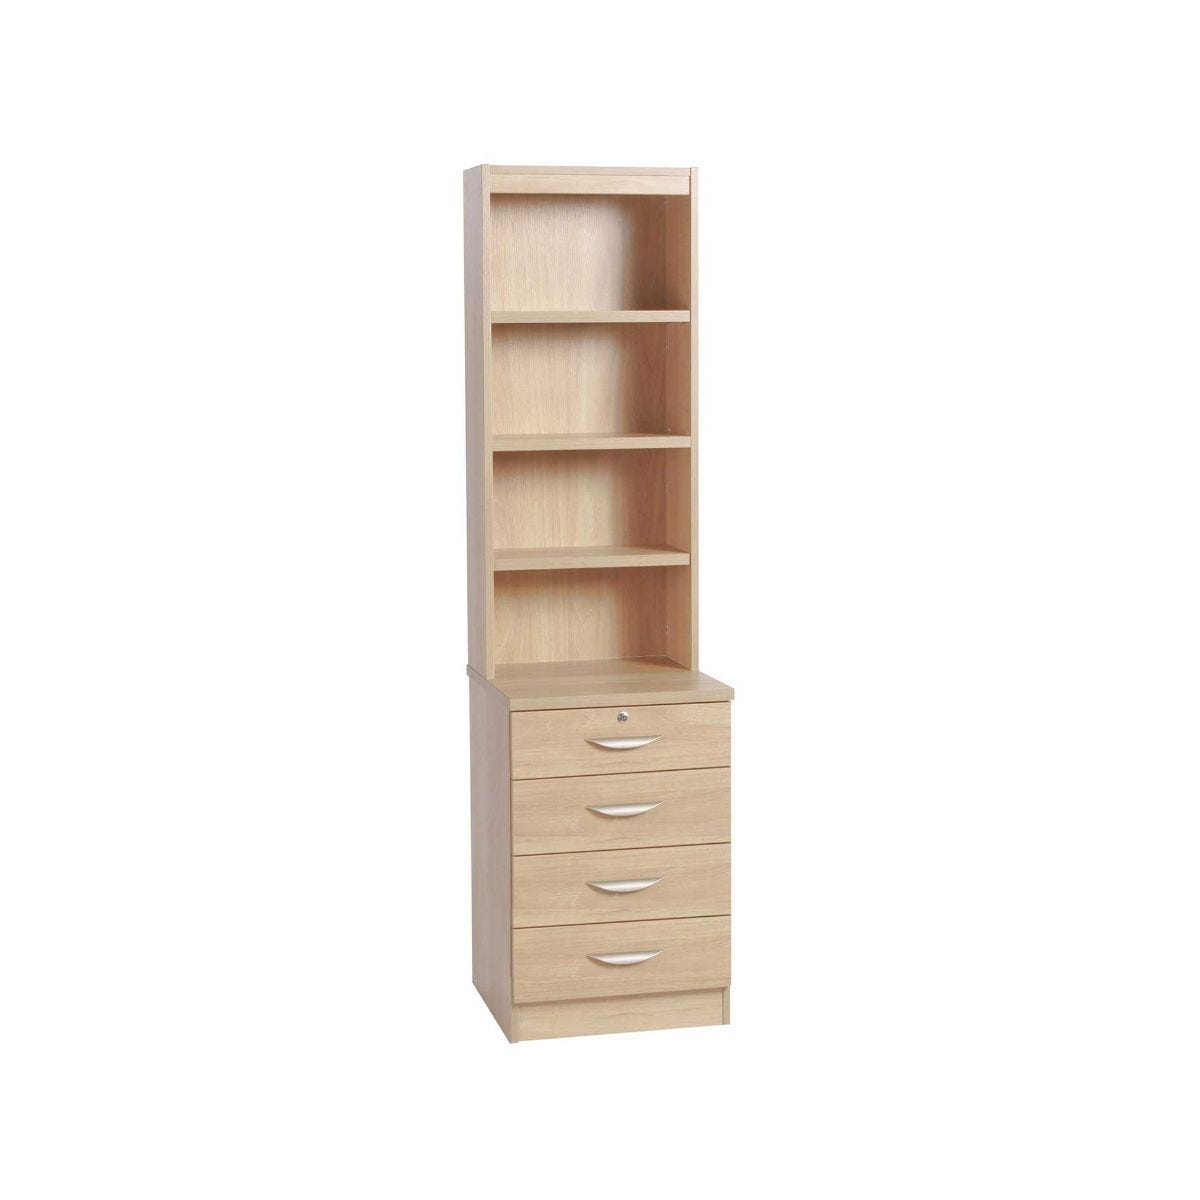 closet products birchbox drawer with modular shelf wood drawers closets organizer soli tower solid dovetail system